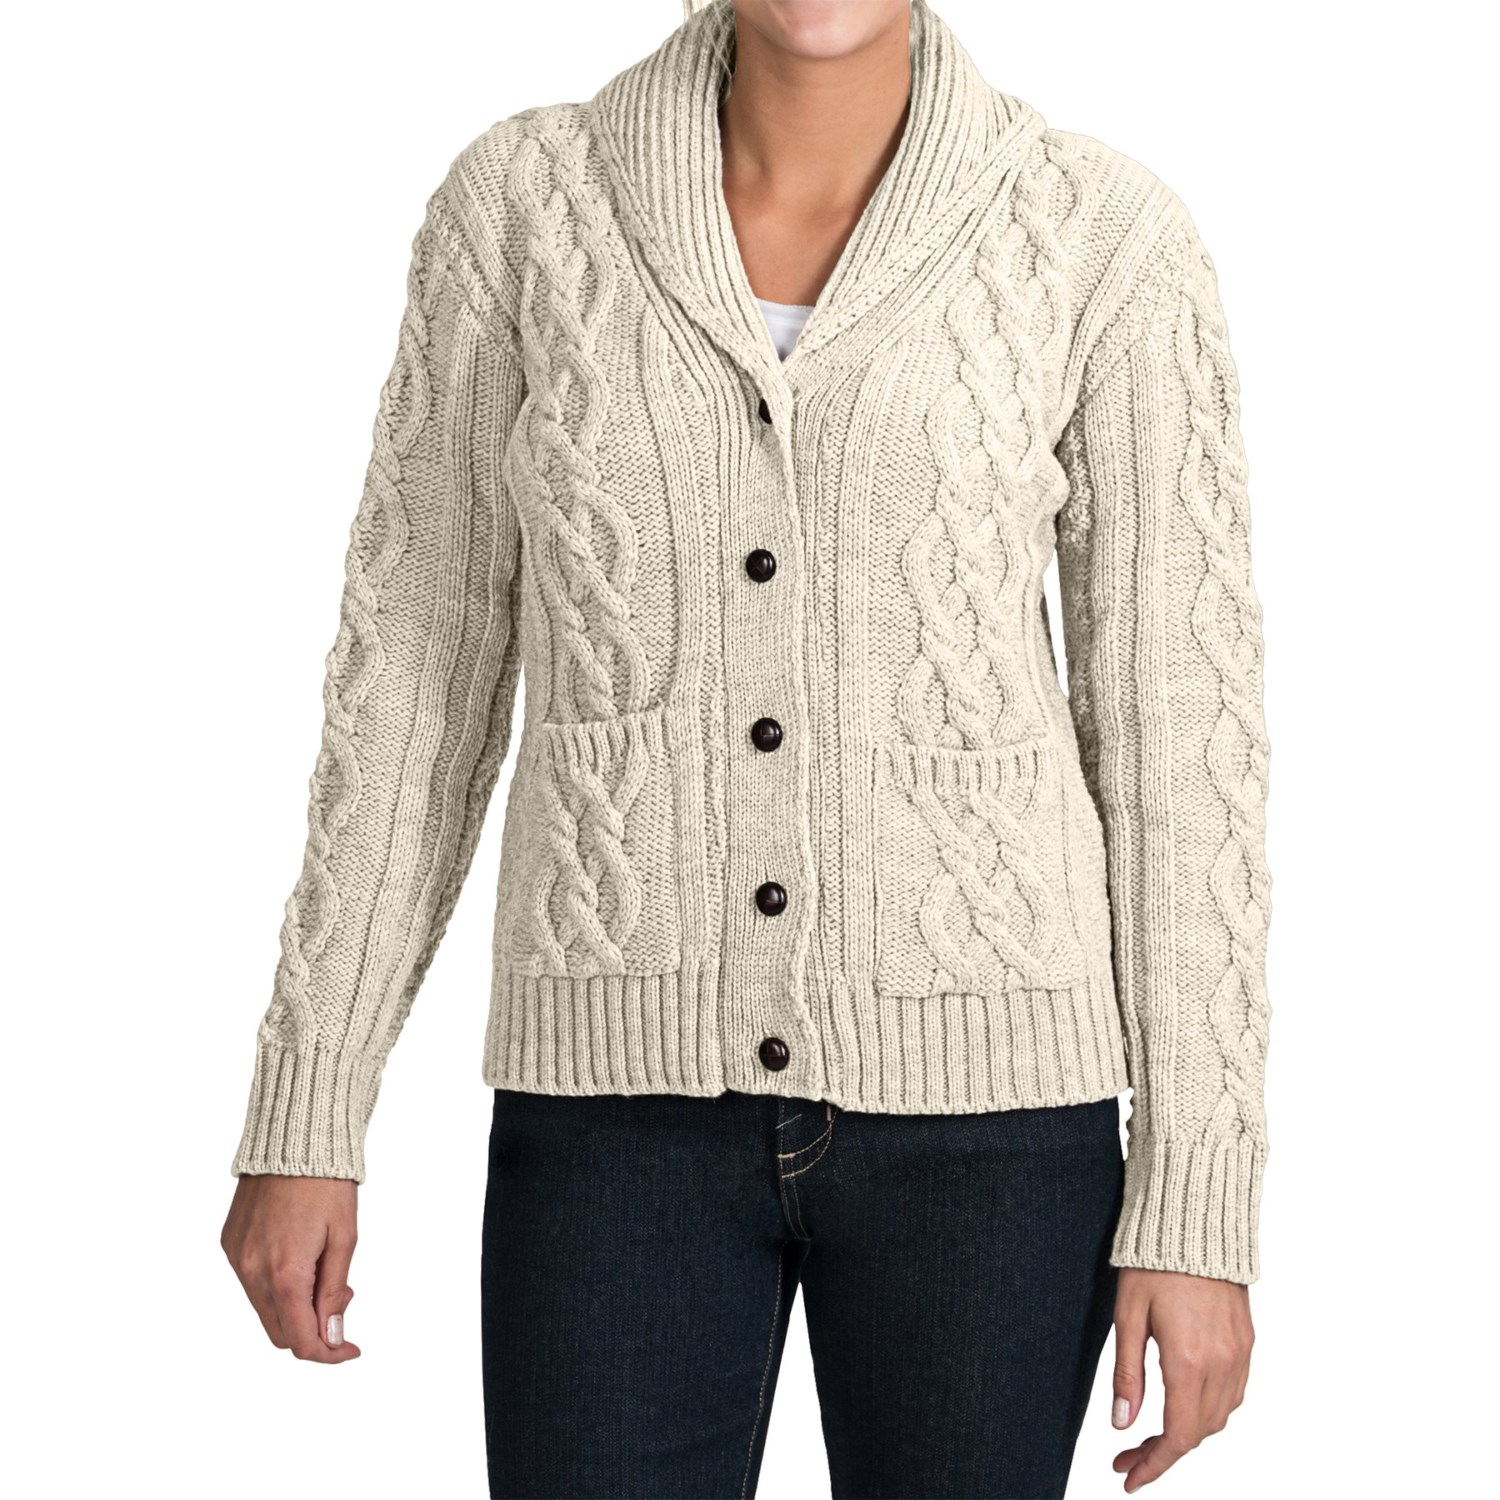 With its elegant shawl collar, this cardigan is a cozy and stylish addition to your workday wardrobe. It looks and feels great all day thanks to fully-fashioned construction and a high-twist yarn that holds its shape and color wash after wash. 60% cotton/40% rayon modal.